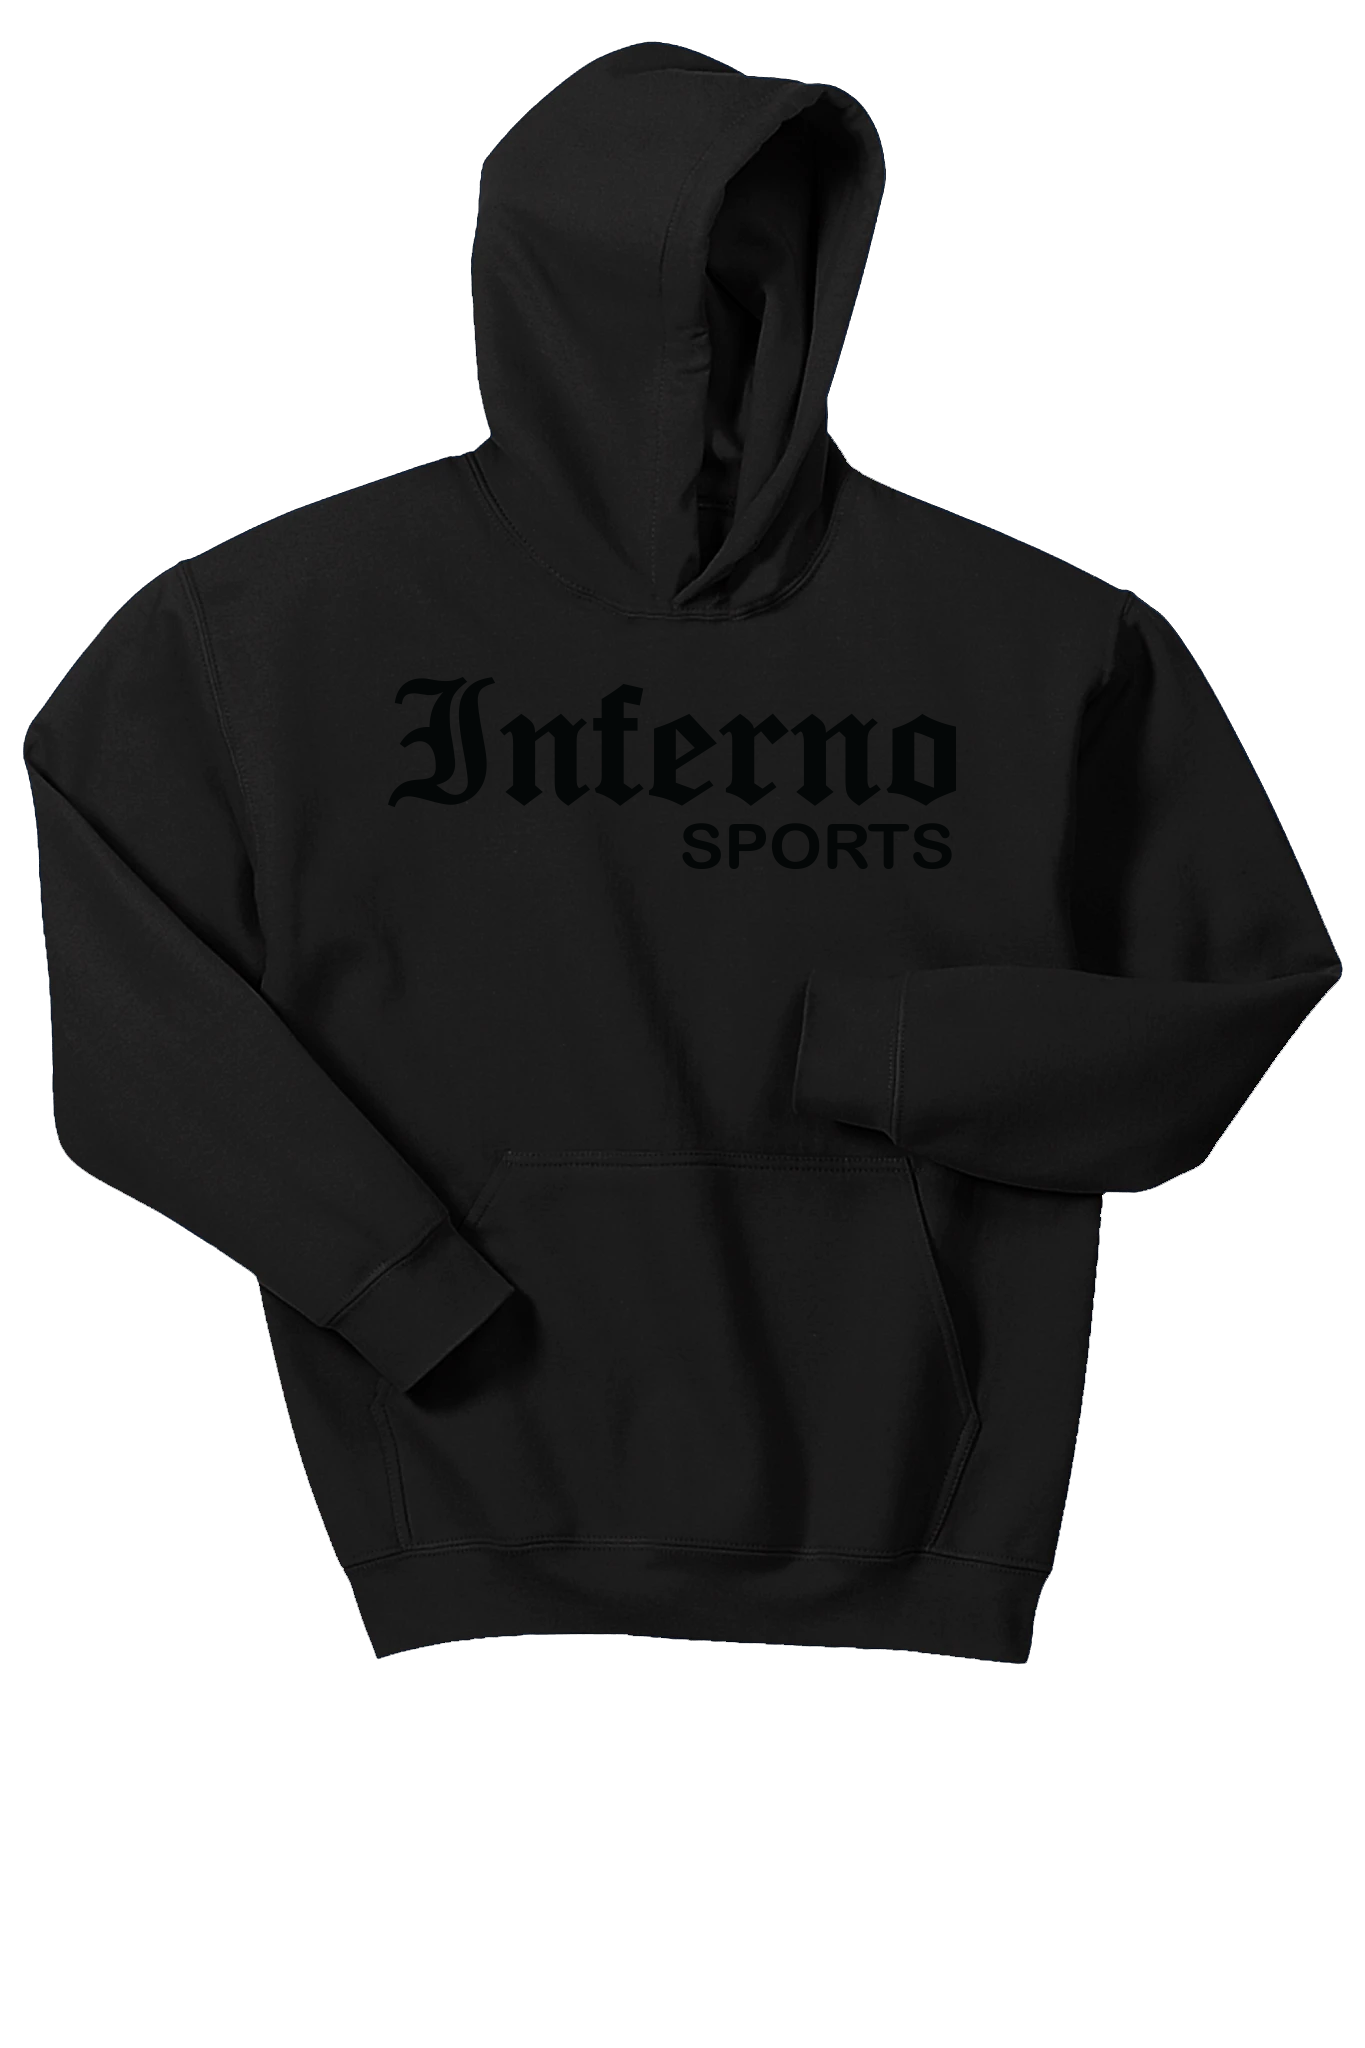 2020 Inferno Sports Embroidered Hoodie